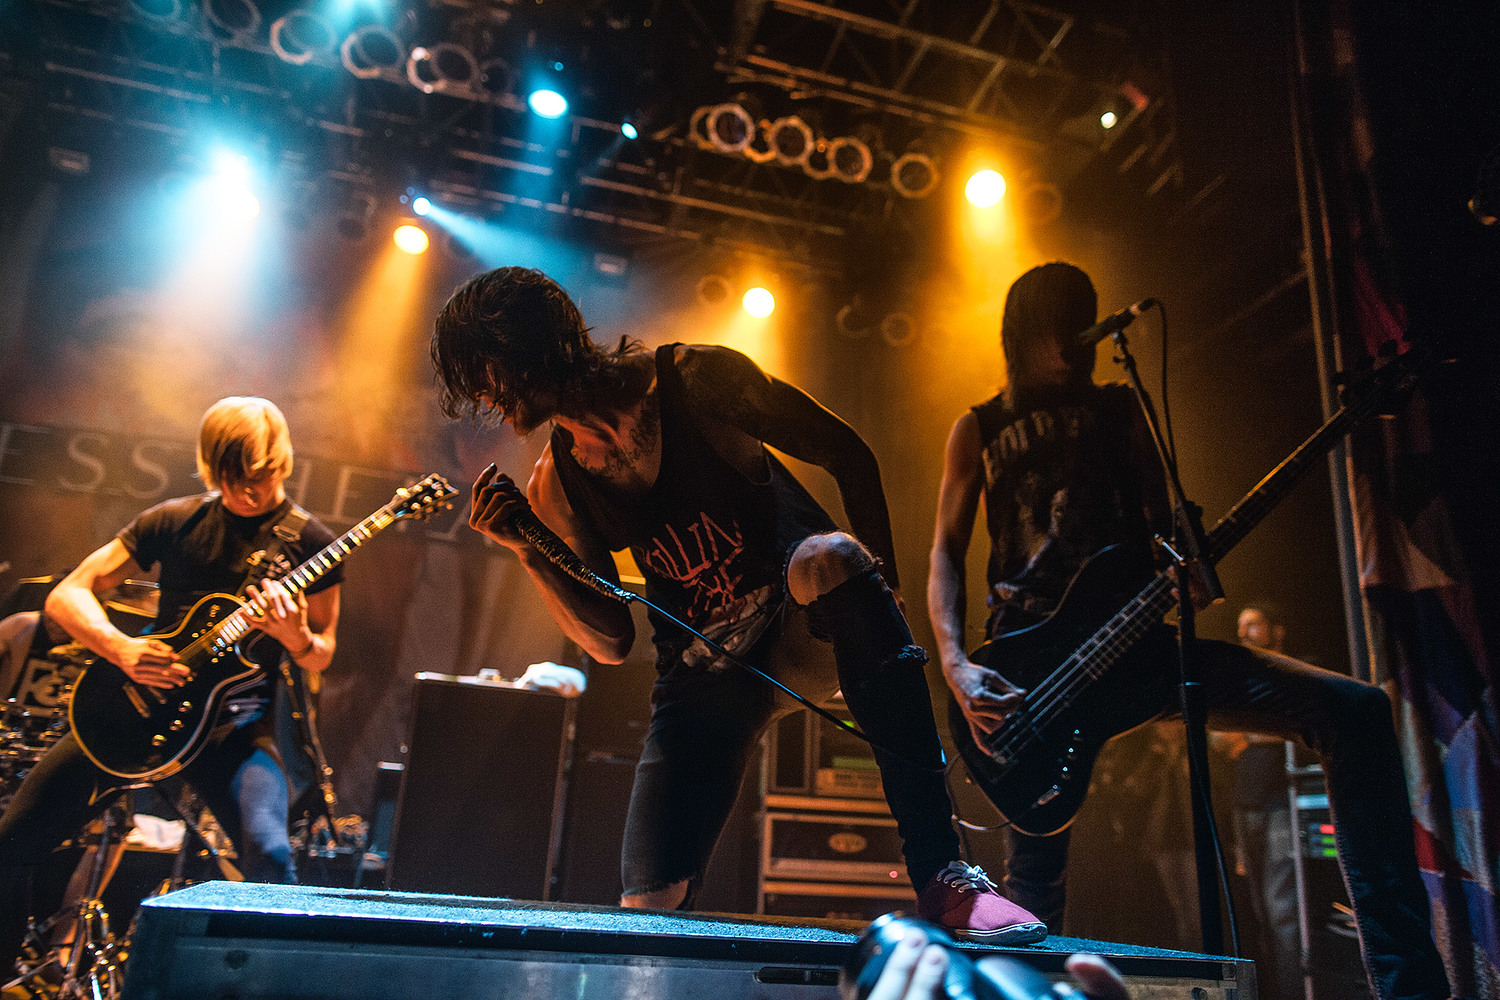 blessthefall at house of blues, cleveland. — brad heaton